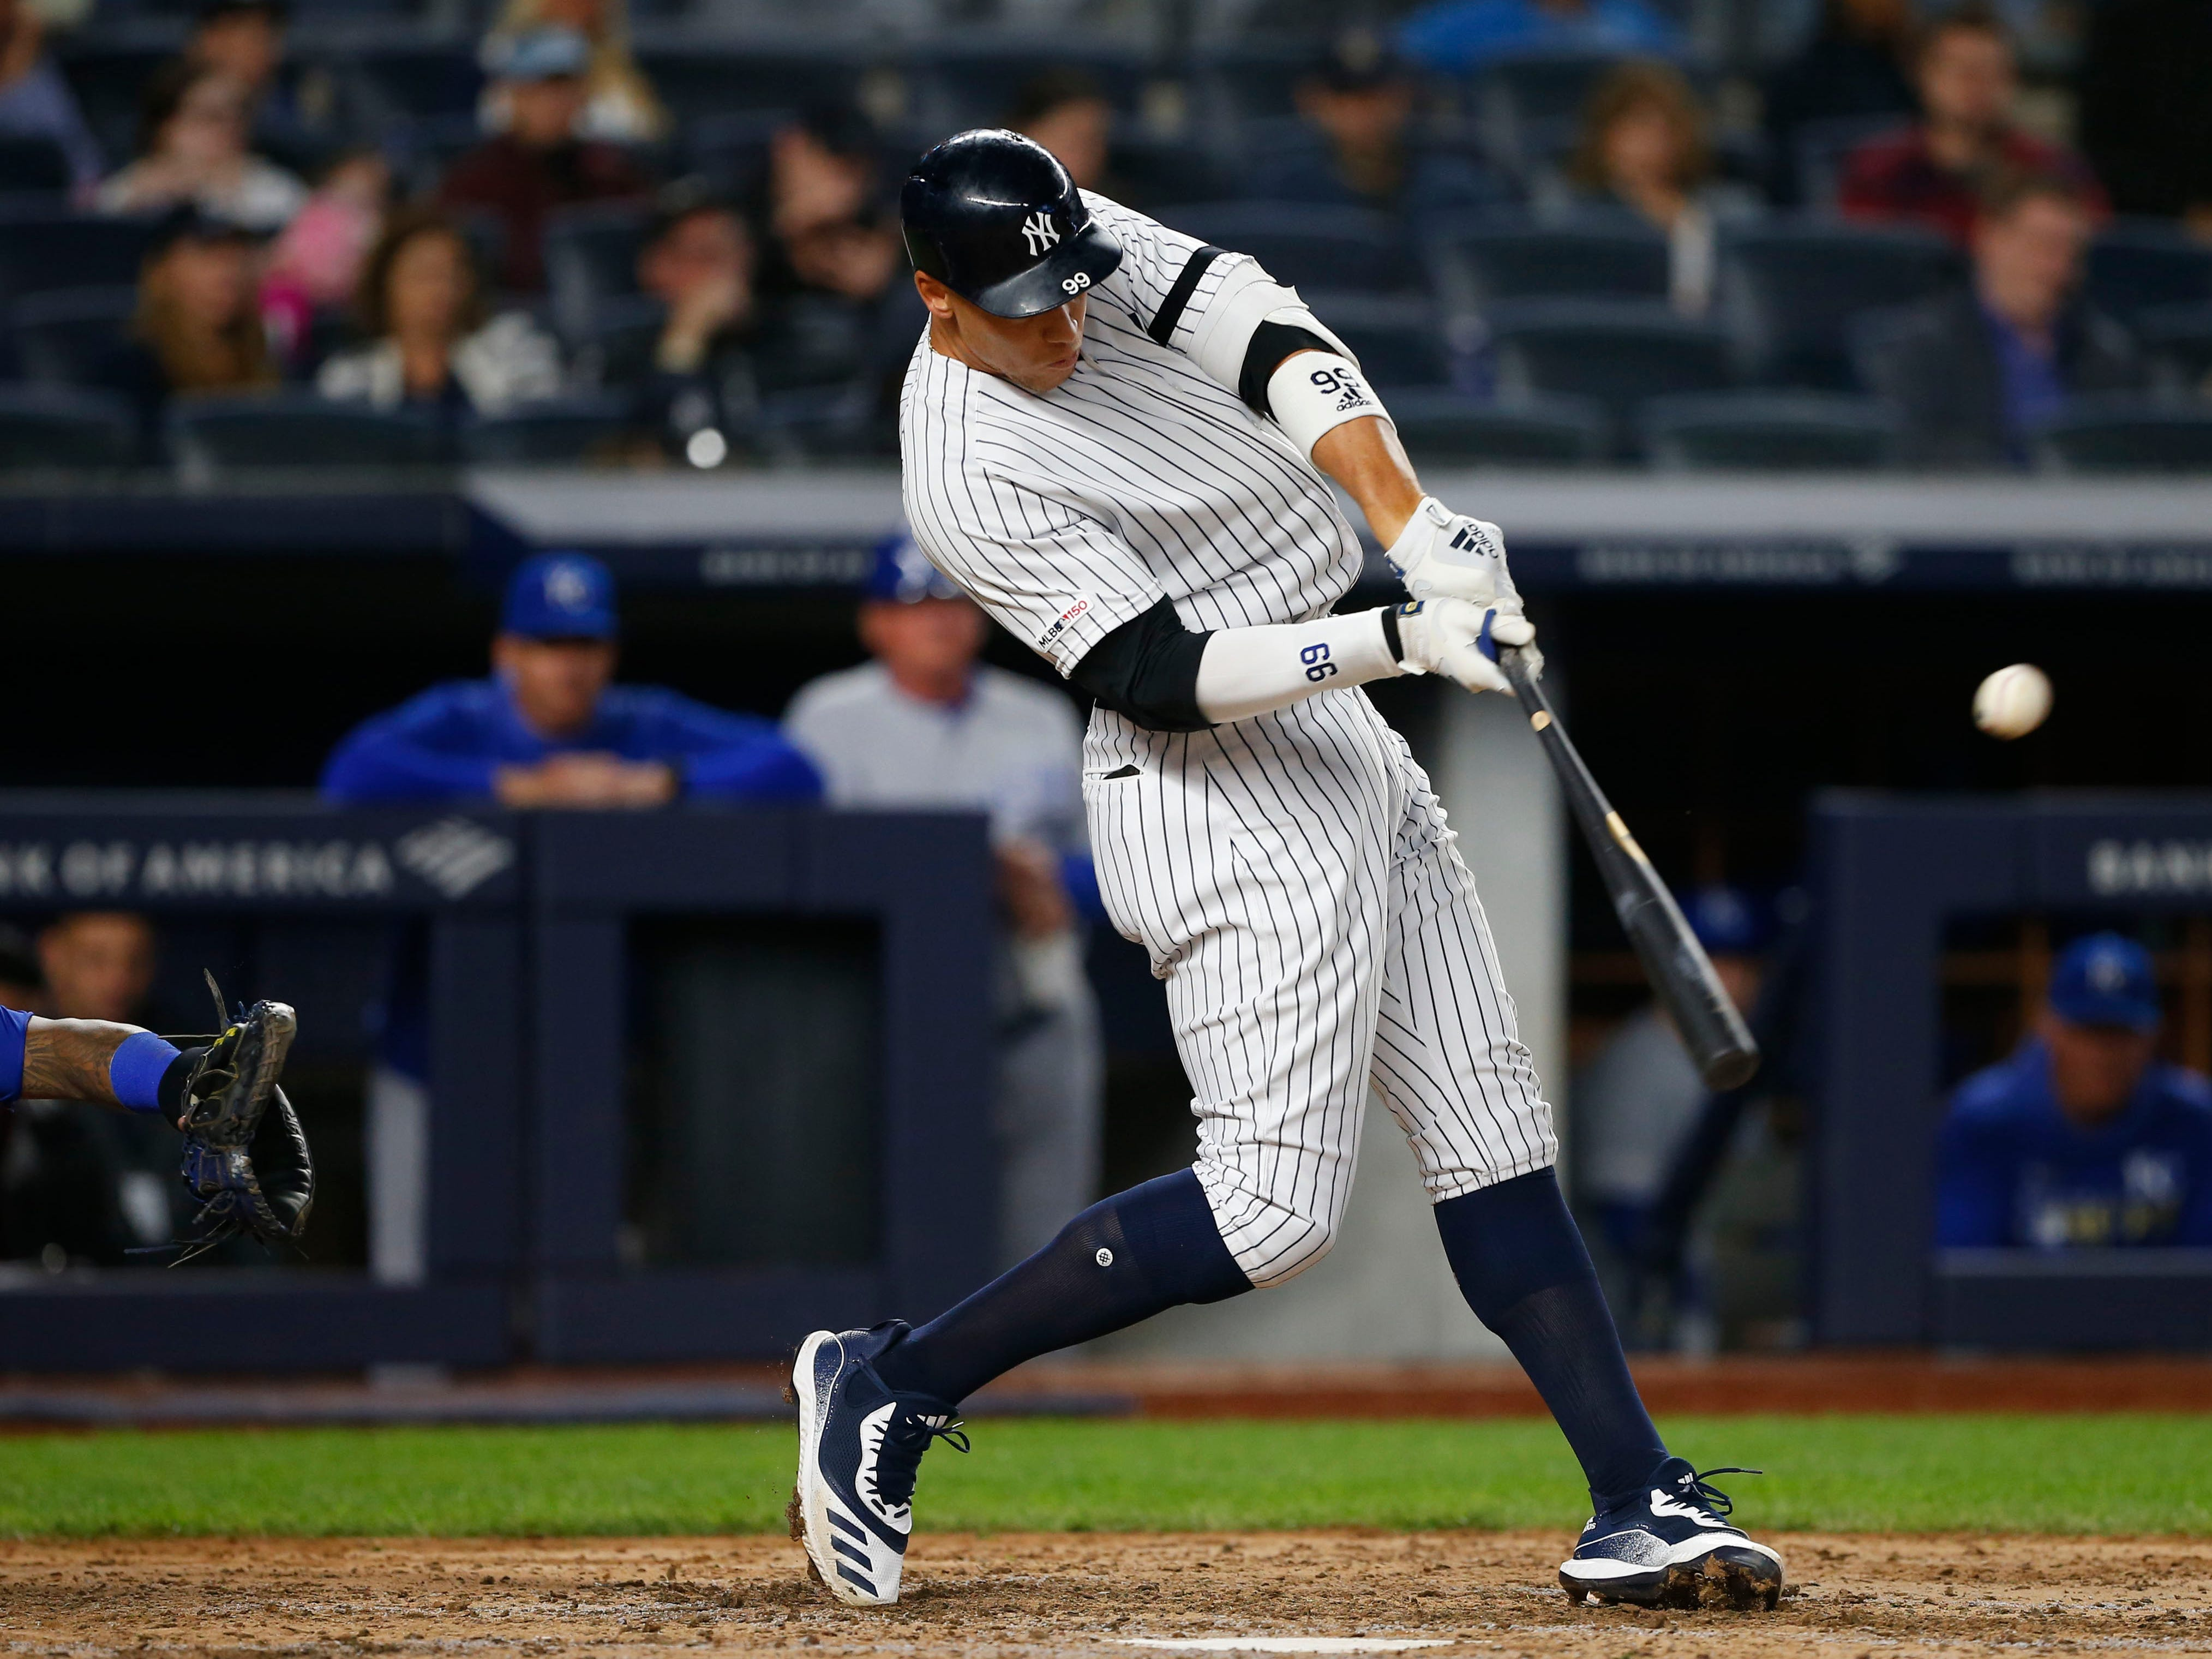 Apr 19, 2019; Bronx, NY, USA;  New York Yankees right fielder Aaron Judge (99) hits a double in the sixth inning against the Kansas City Royals at Yankee Stadium.